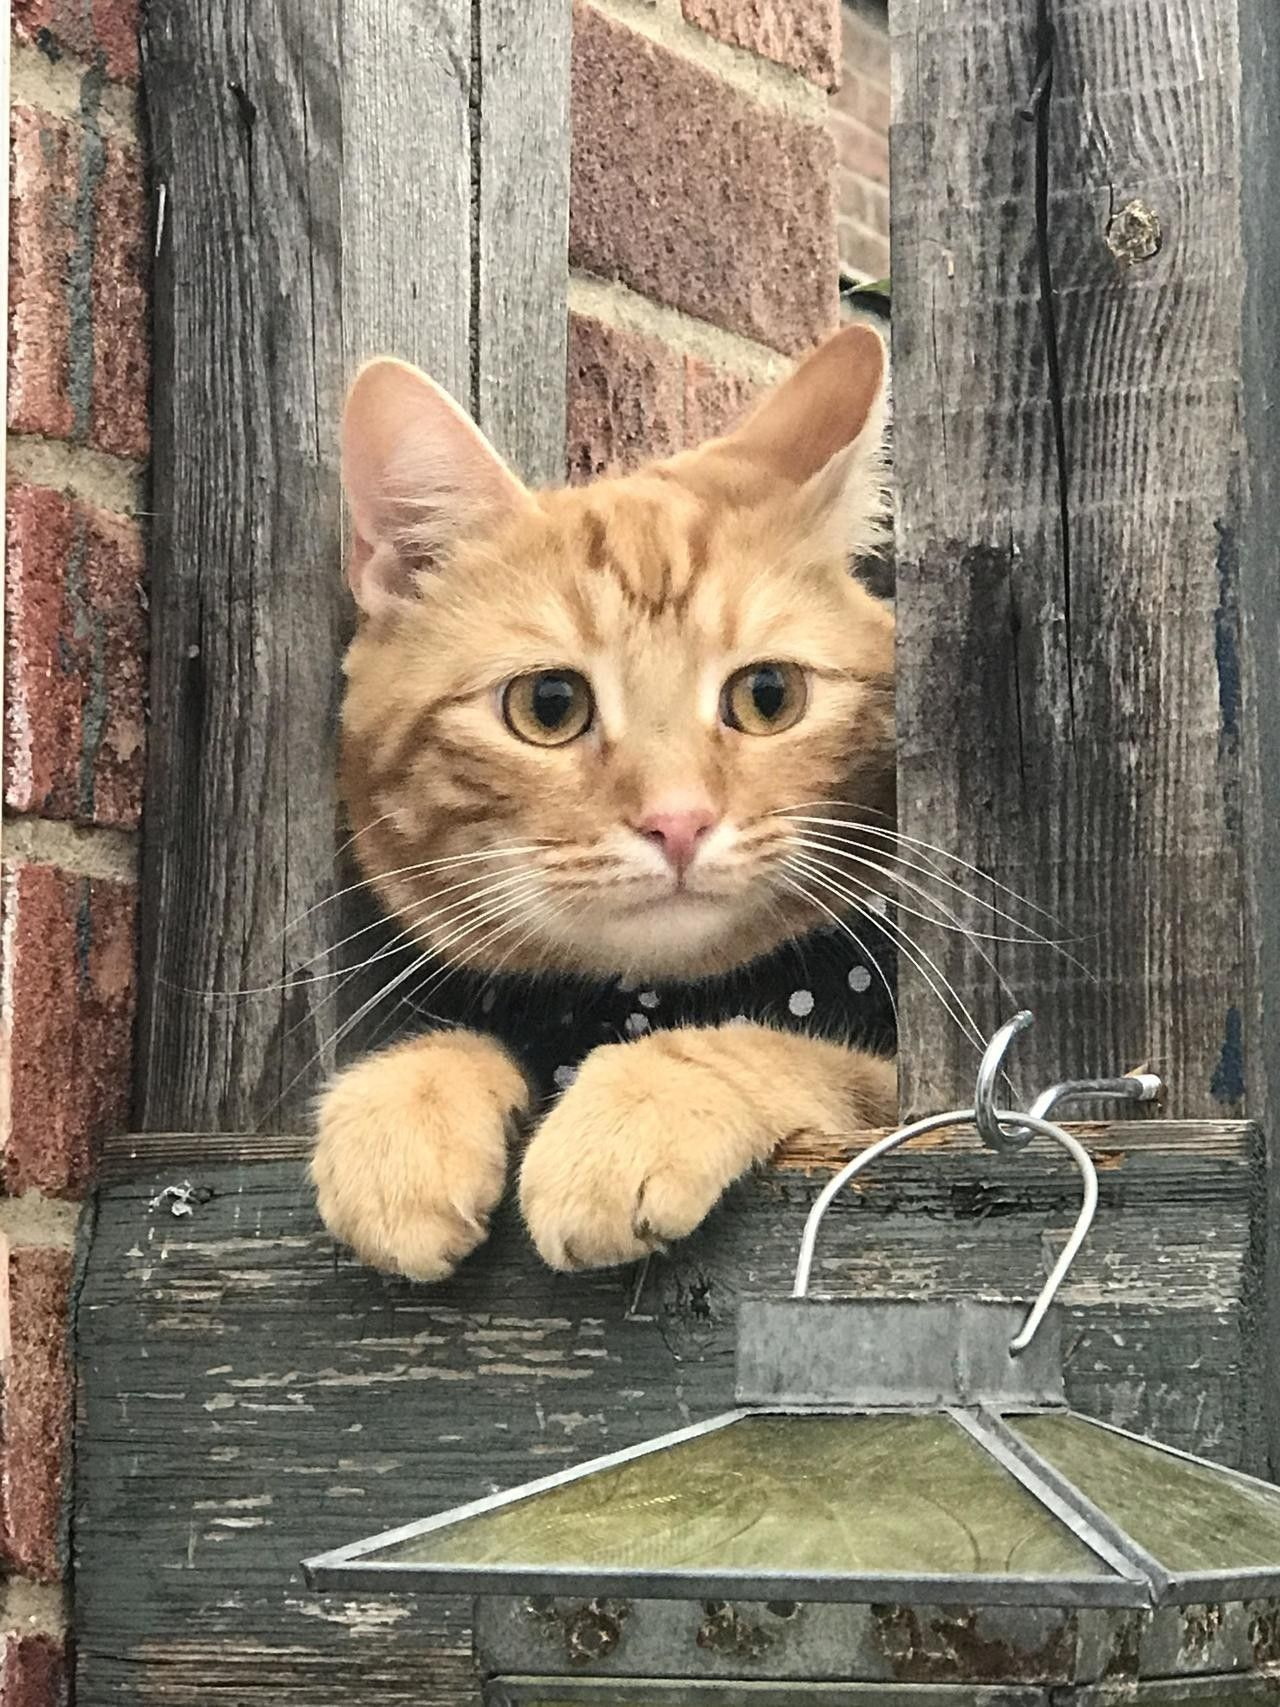 Pin By Autumn Bullock On Animals In 2020 Cats Kitten Meowing Cute Cats